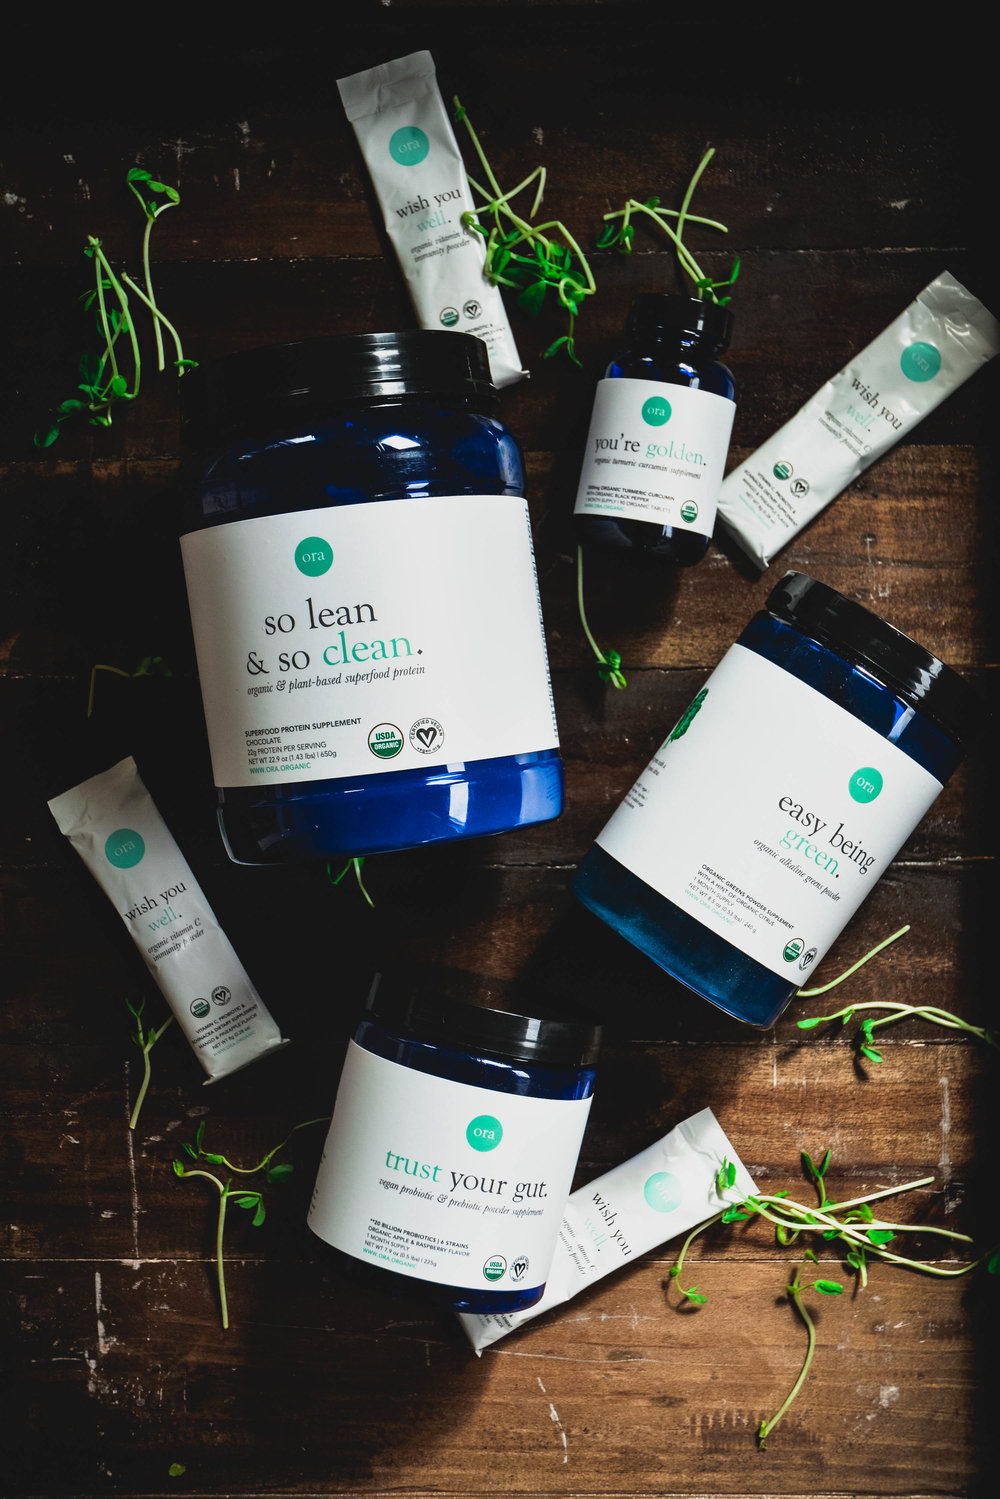 Supplements - For the times when we can't get everything from our food, in come these amazing, organic, vegan no additive supplements from Ora Organic. Check them out here!